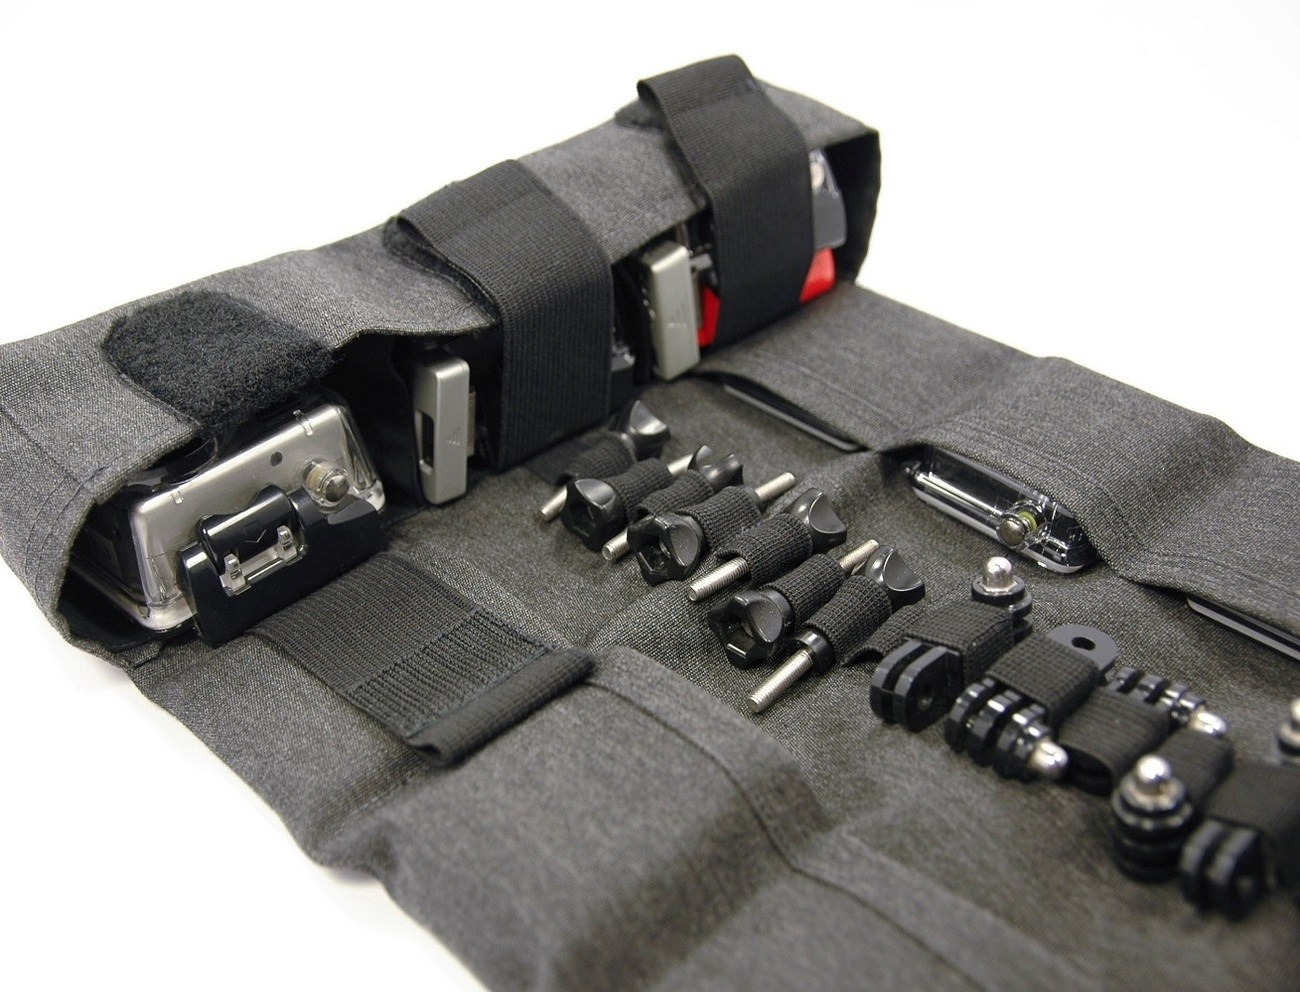 RollPro III – GoPro Organizer Carrying Case